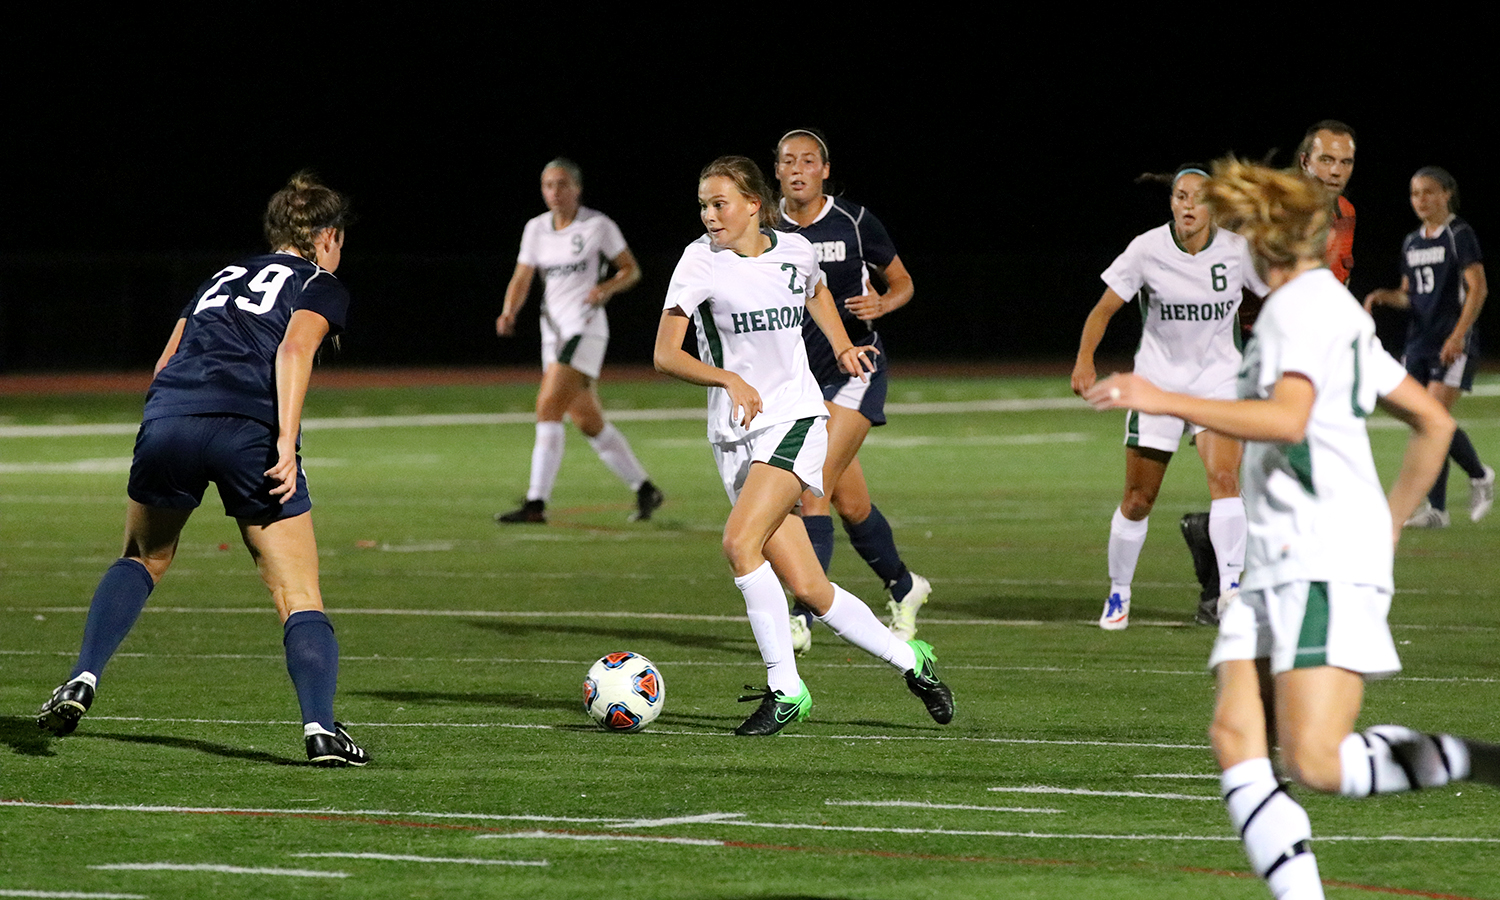 Phoebe Wade '19 challenges the Ithaca defense as she moves the ball down the field.